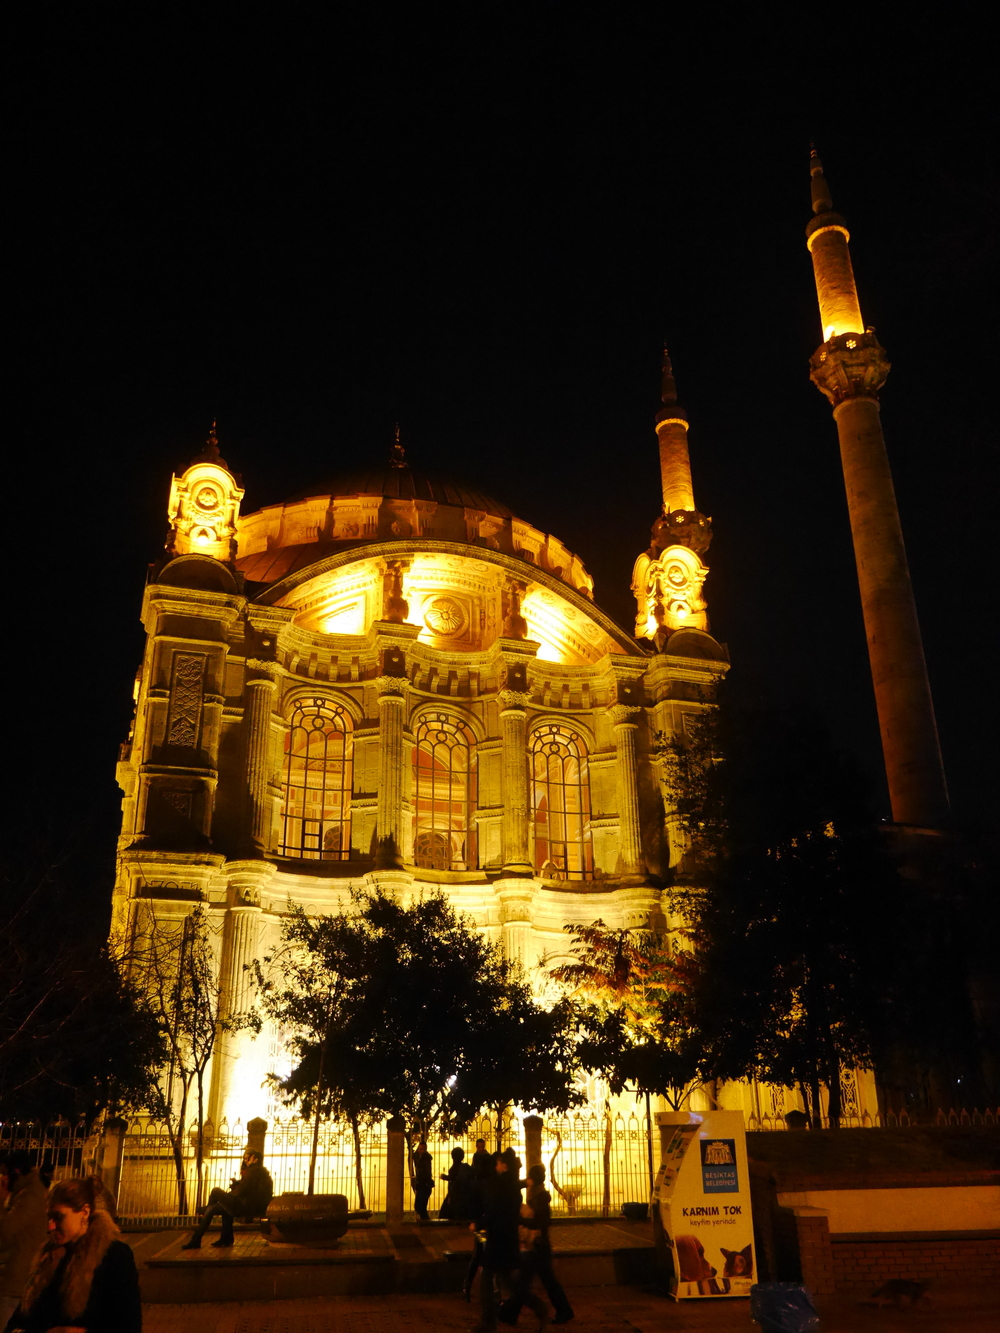 The Ortakoy Mosque at night.